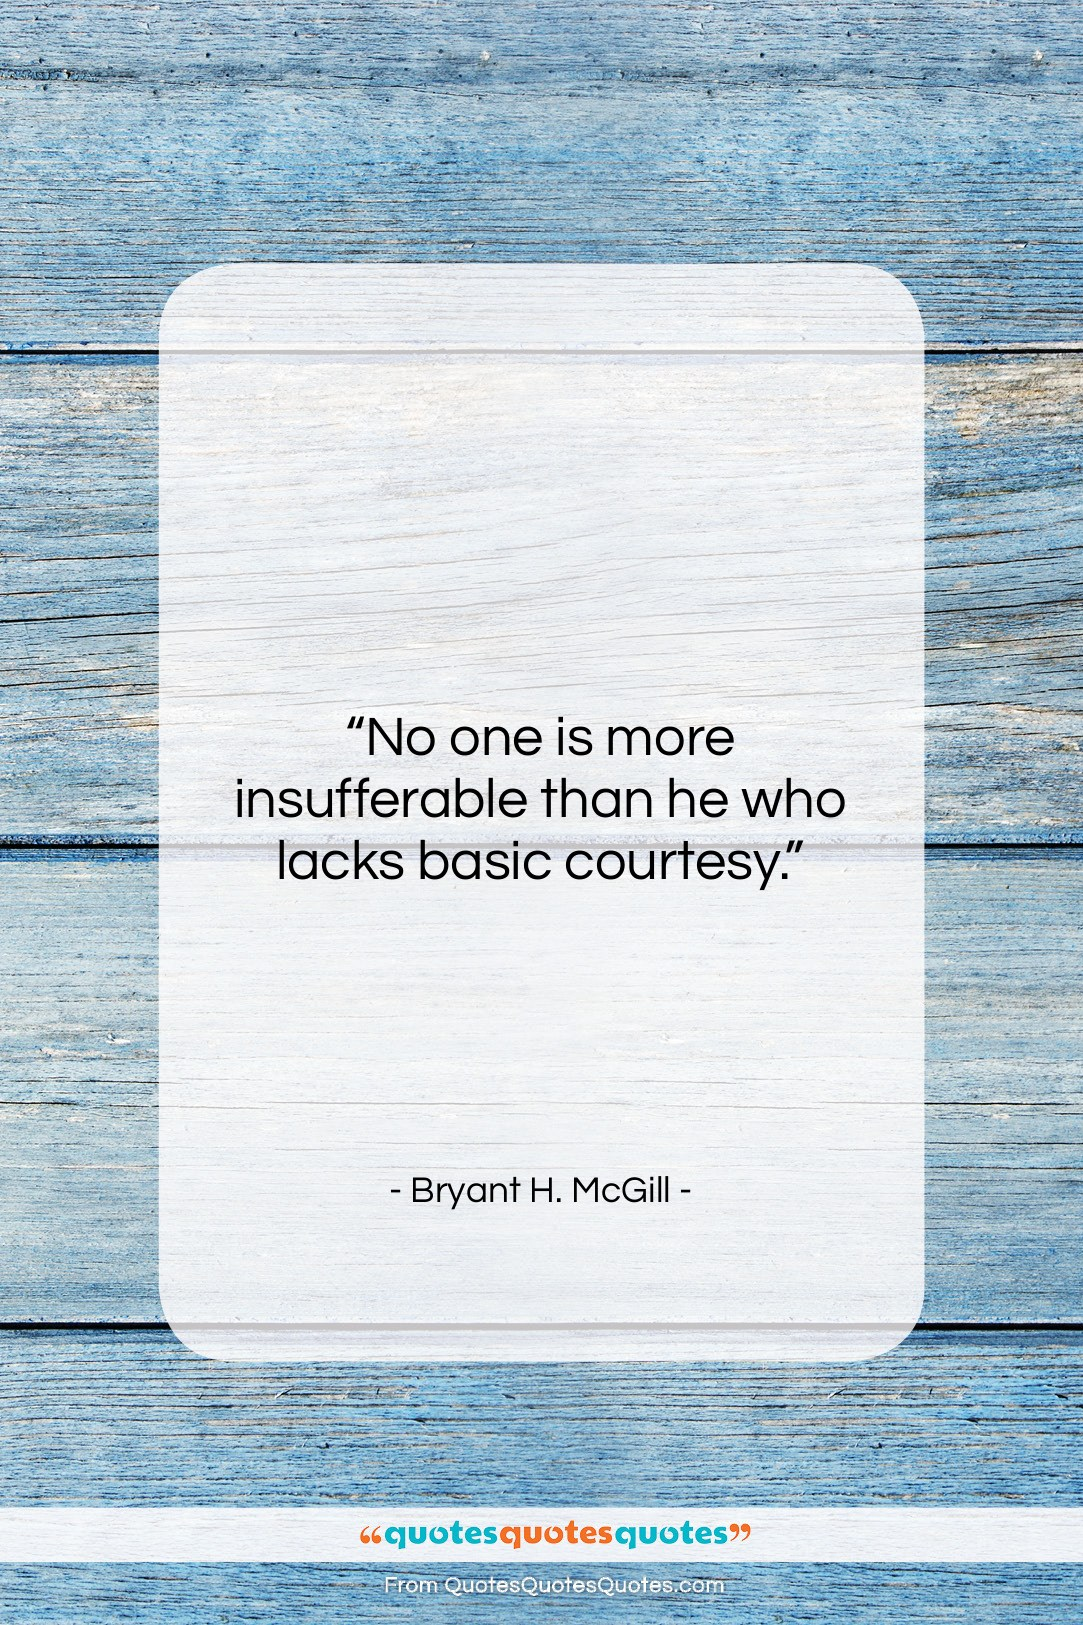 """Bryant H. McGill quote: """"No one is more insufferable than he…""""- at QuotesQuotesQuotes.com"""